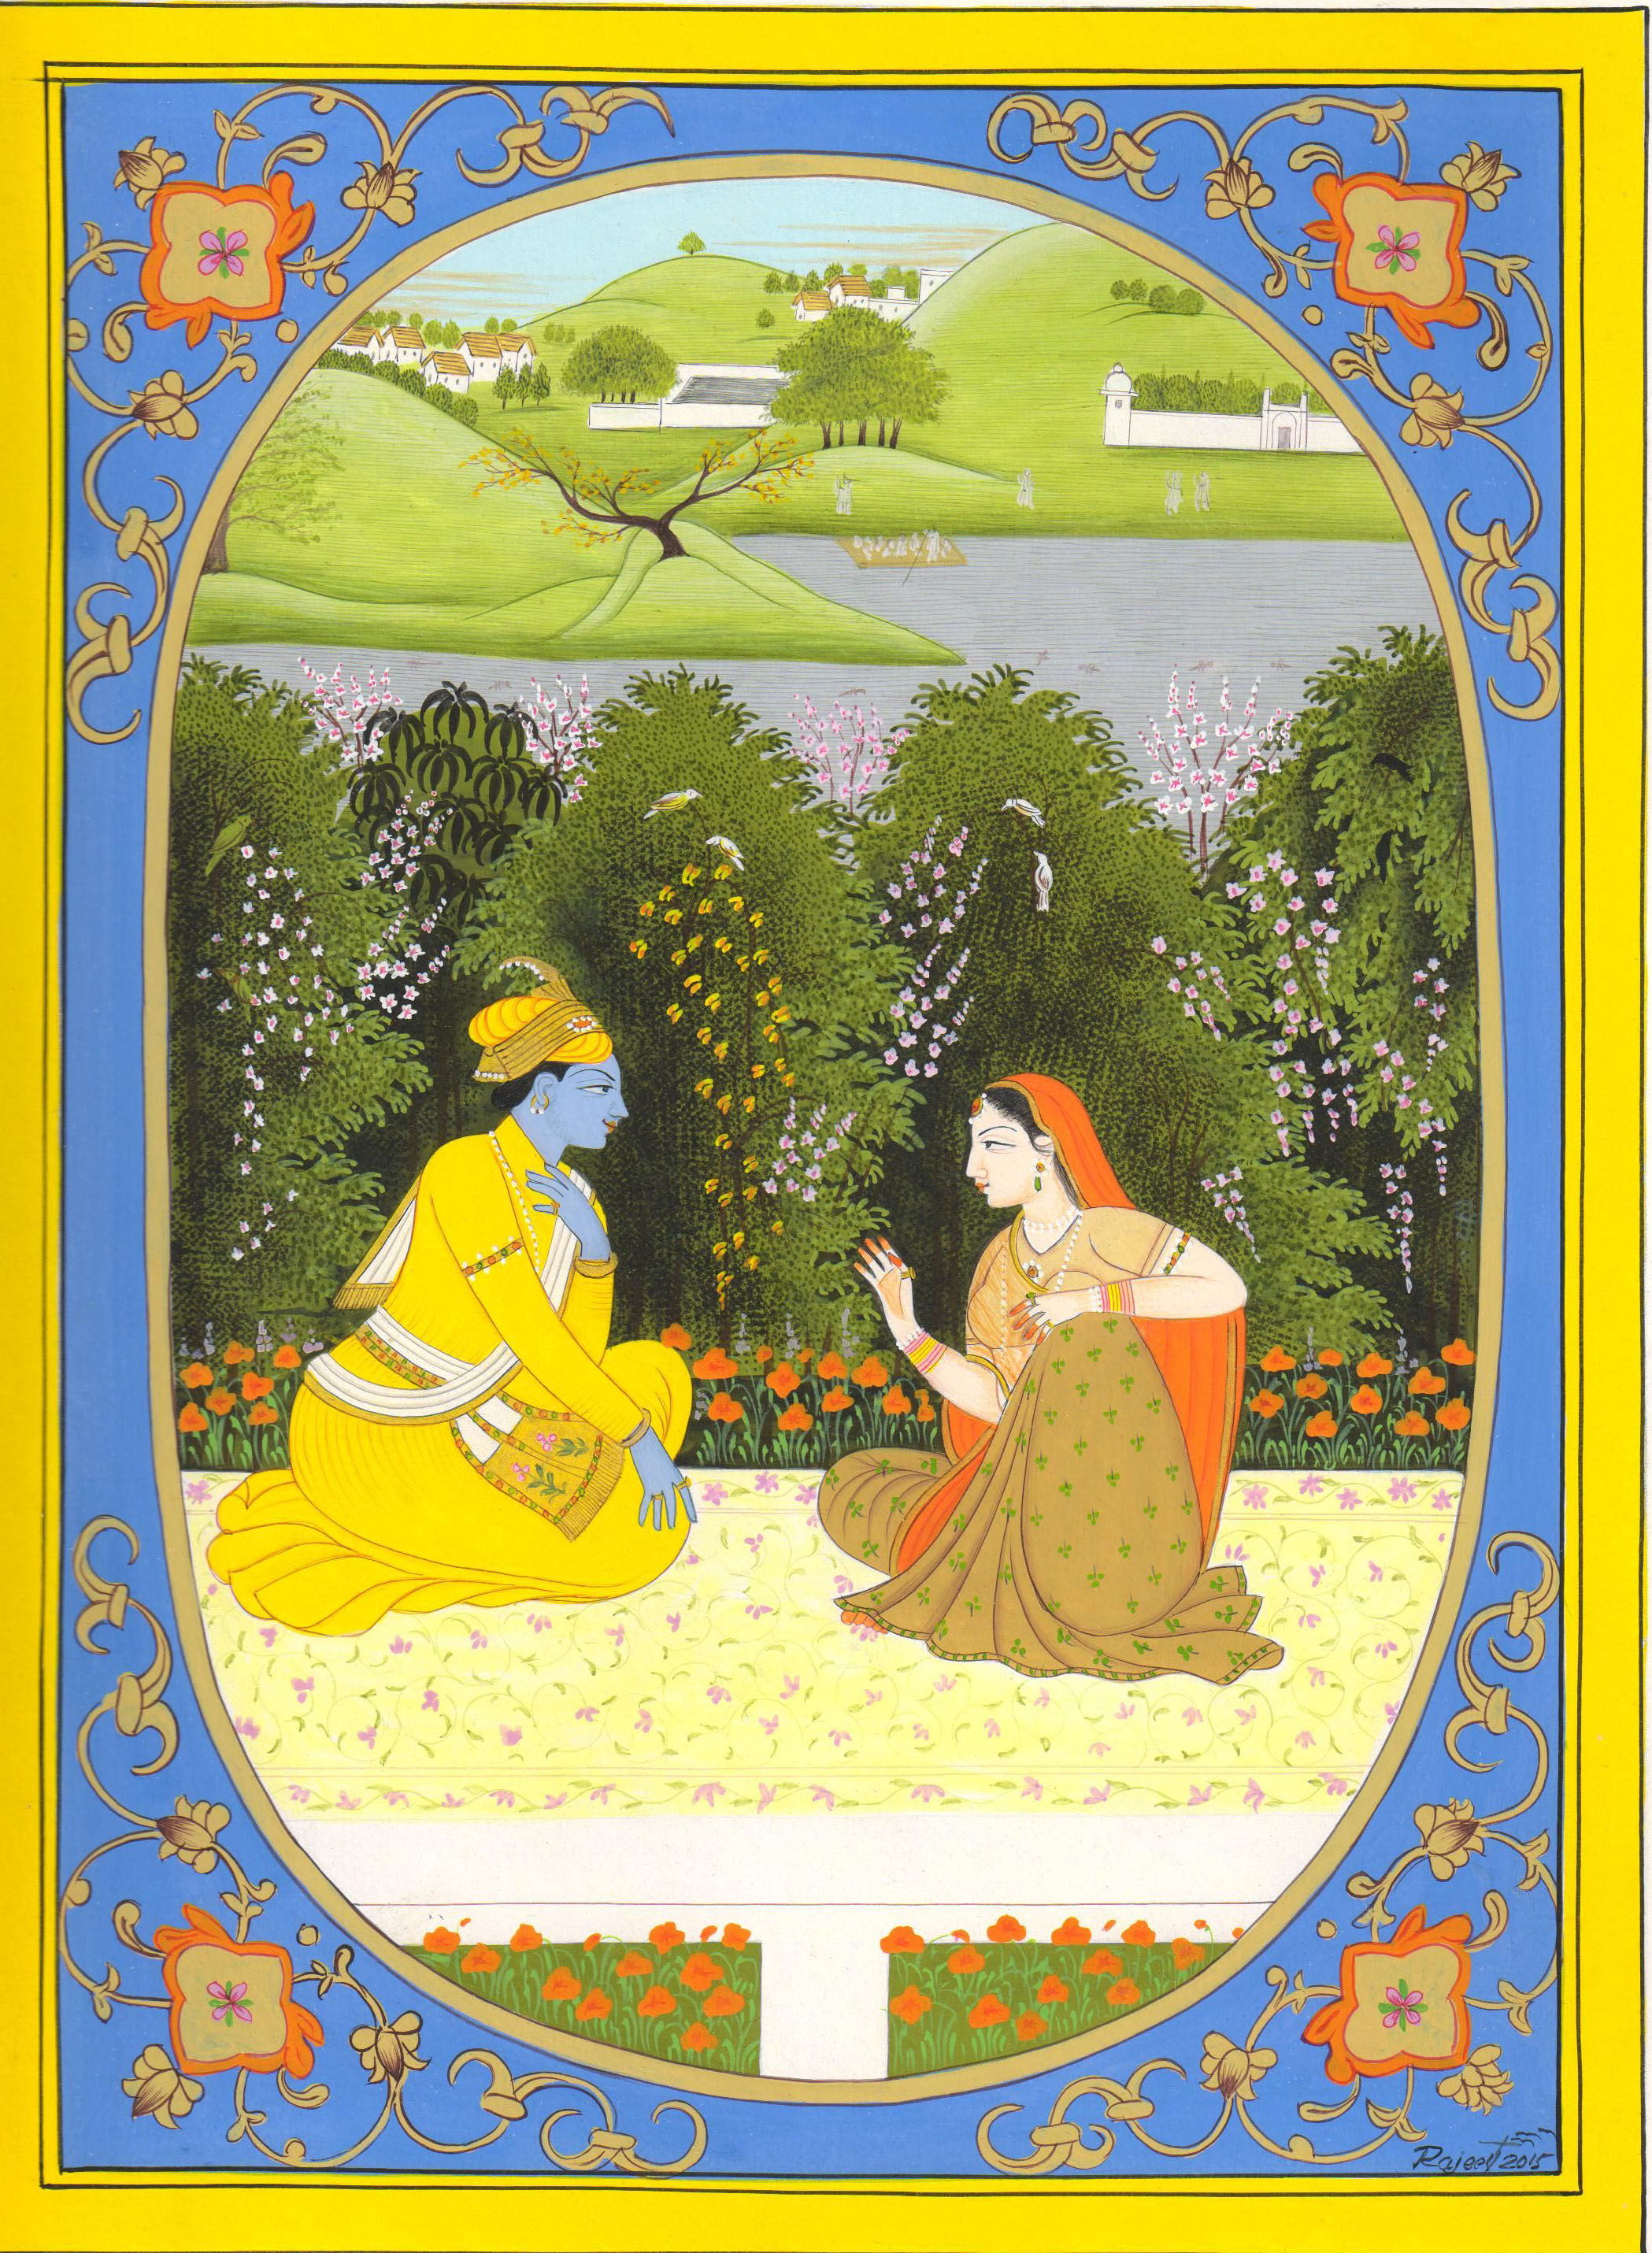 Month of Chaitra